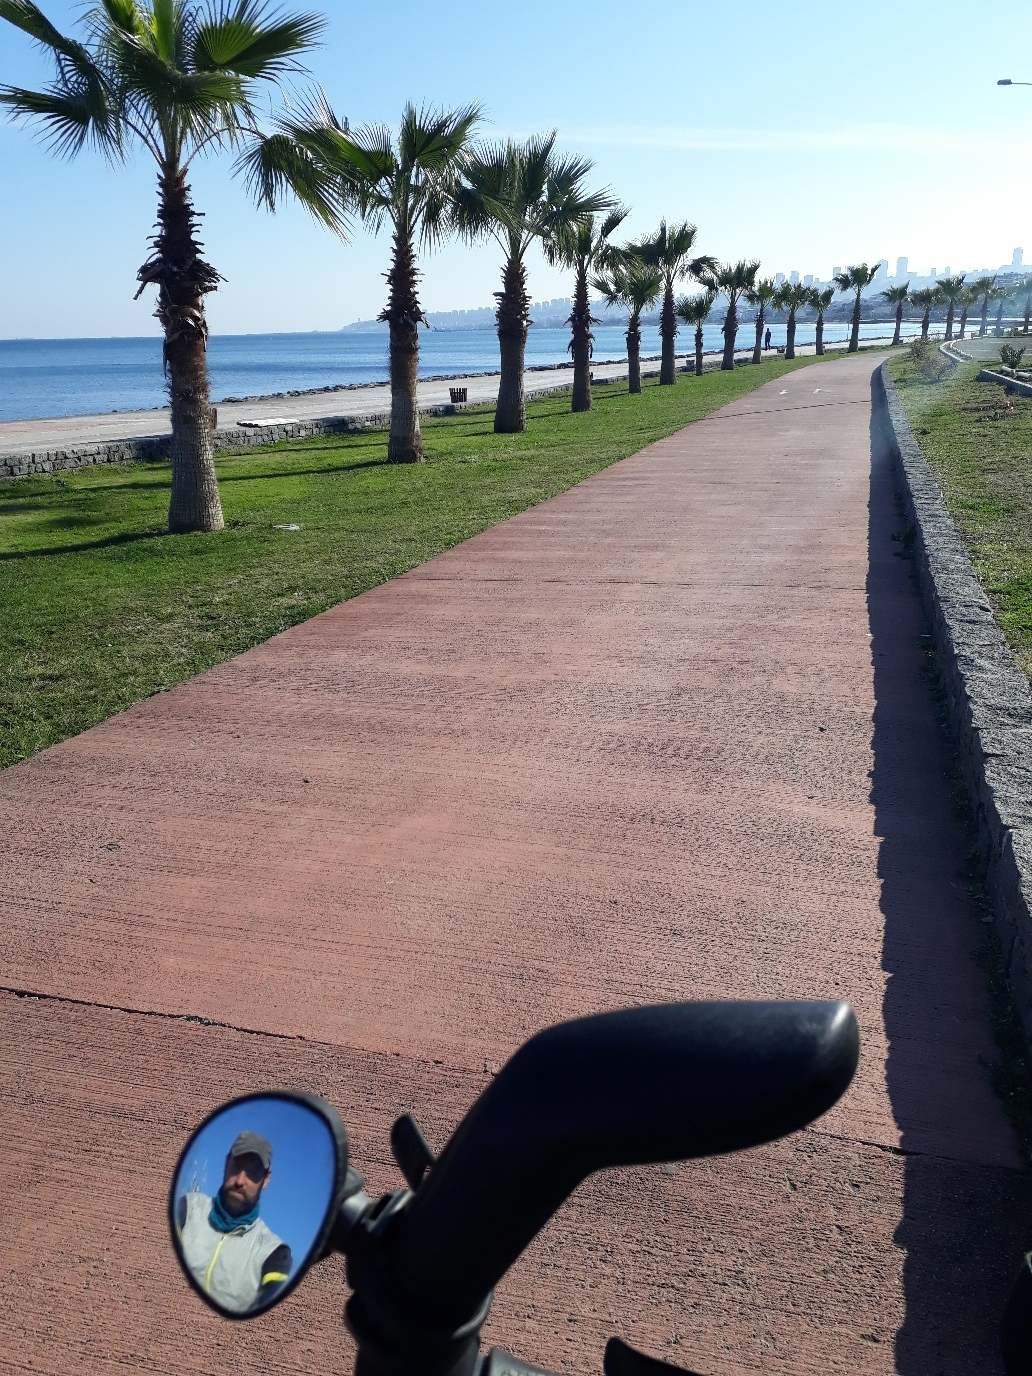 Bicylepath to Samsun